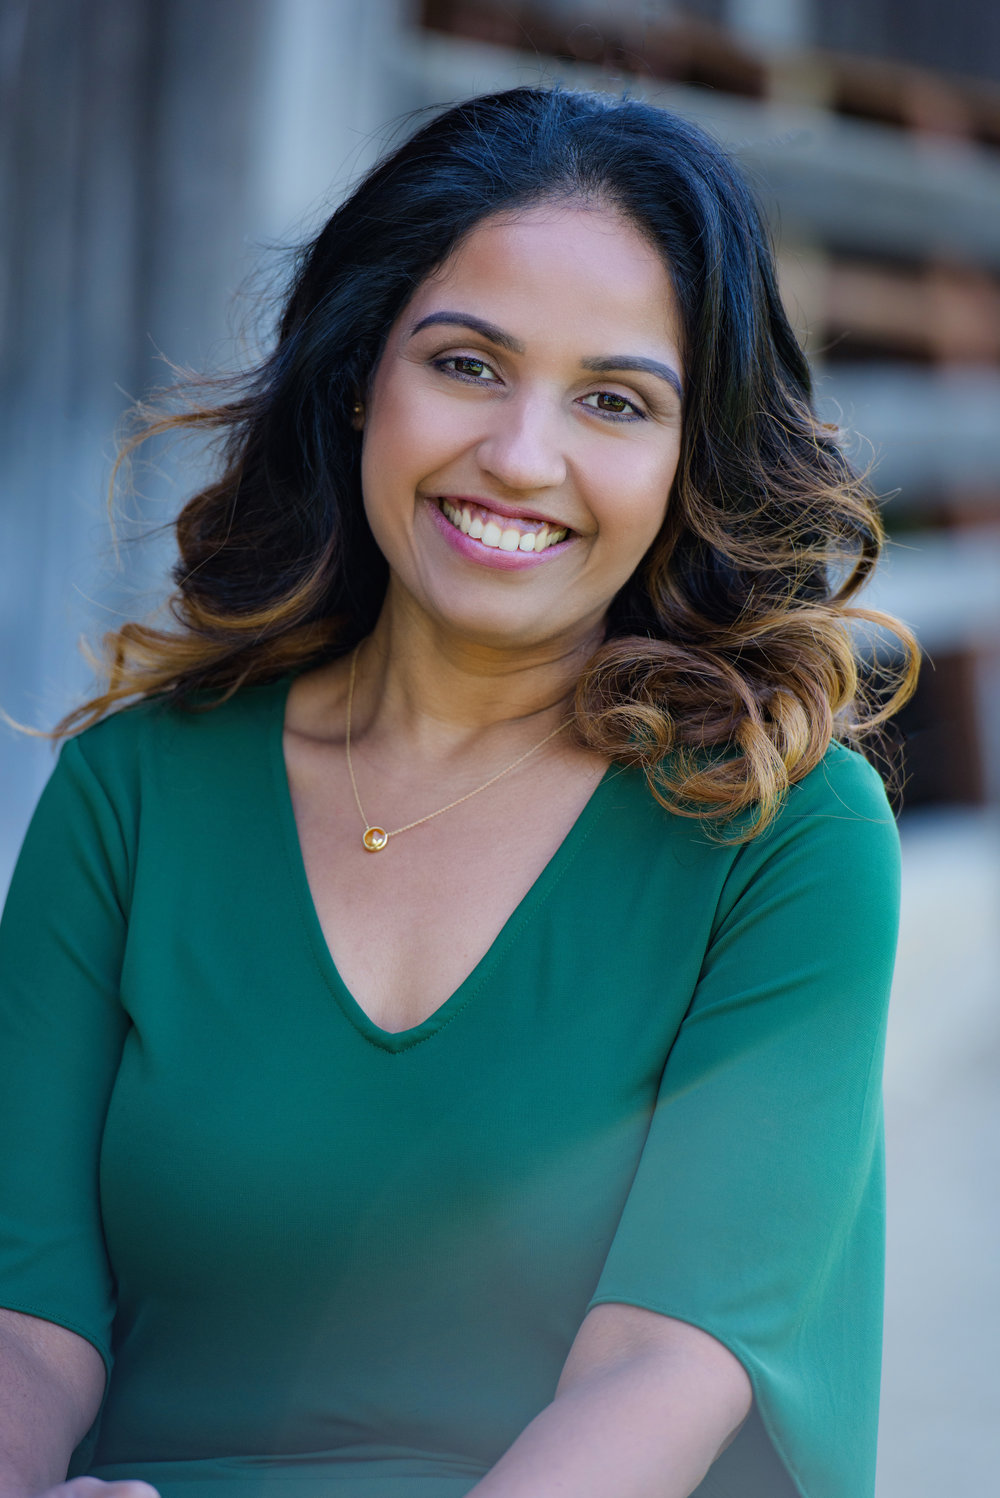 Indian Female small business owner of hair salon and barber shop in Pleasanton California south of San Francisco.